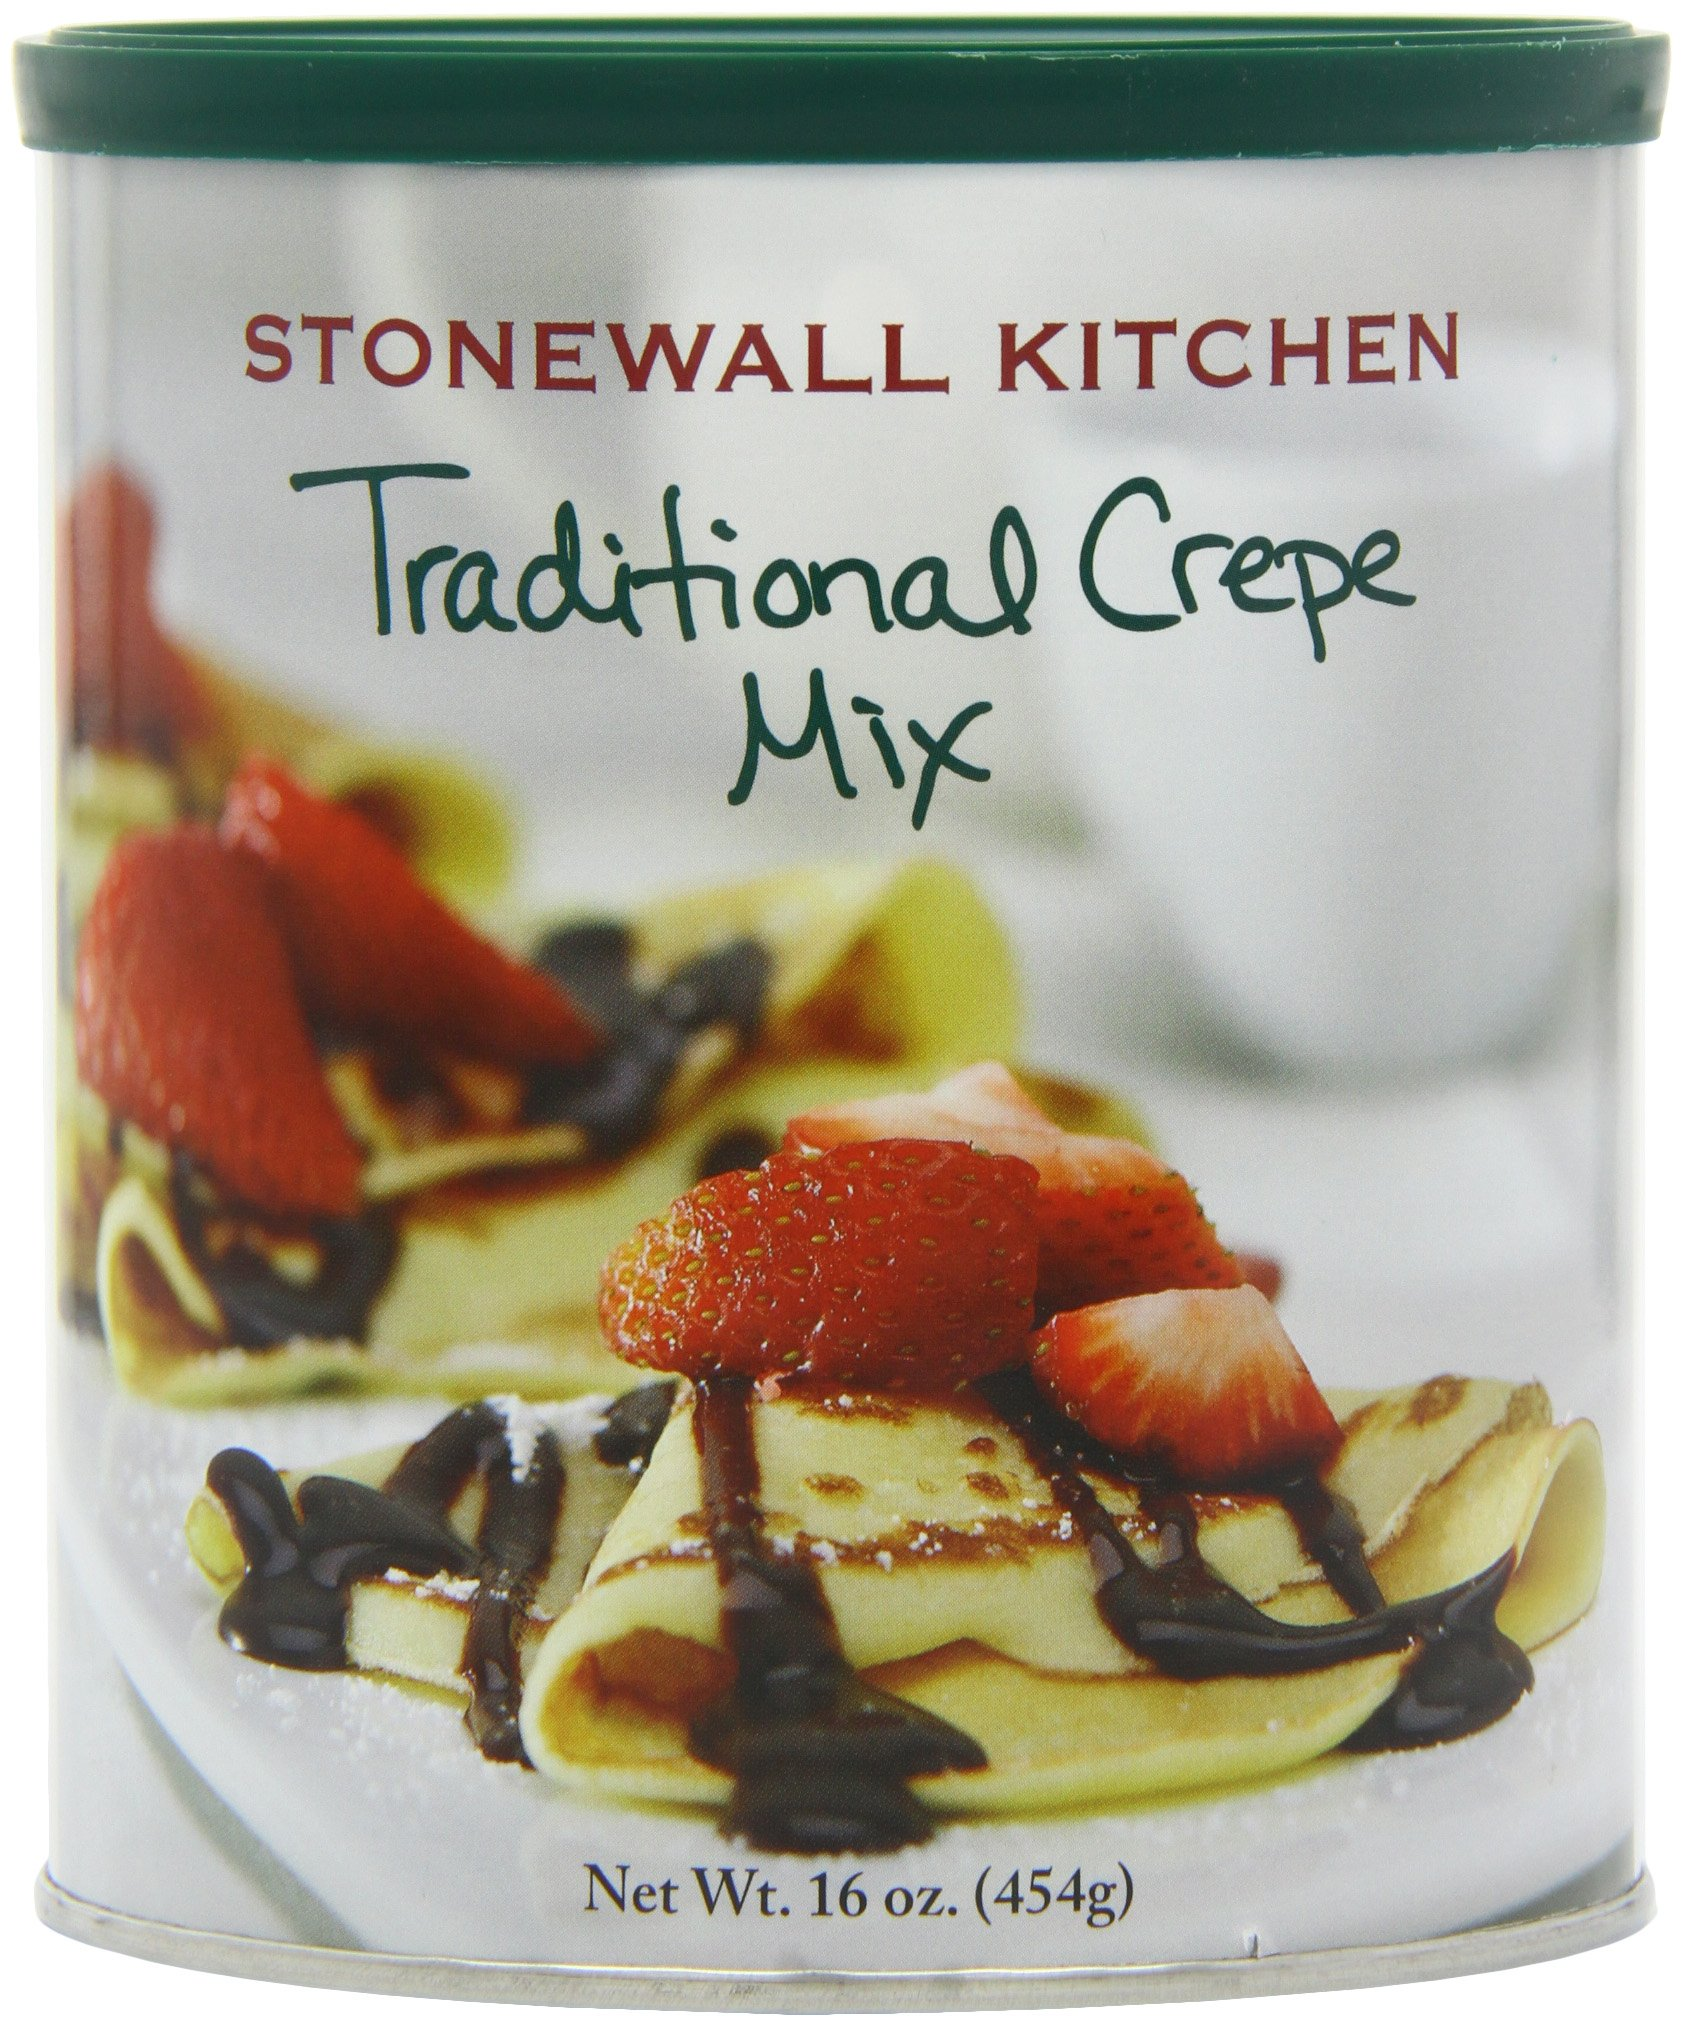 Stonewall Kitchens, Traditional Crepe Mix, 16-Ounce Canisters (Pack of 4) by Stonewall Kitchen (Image #1)